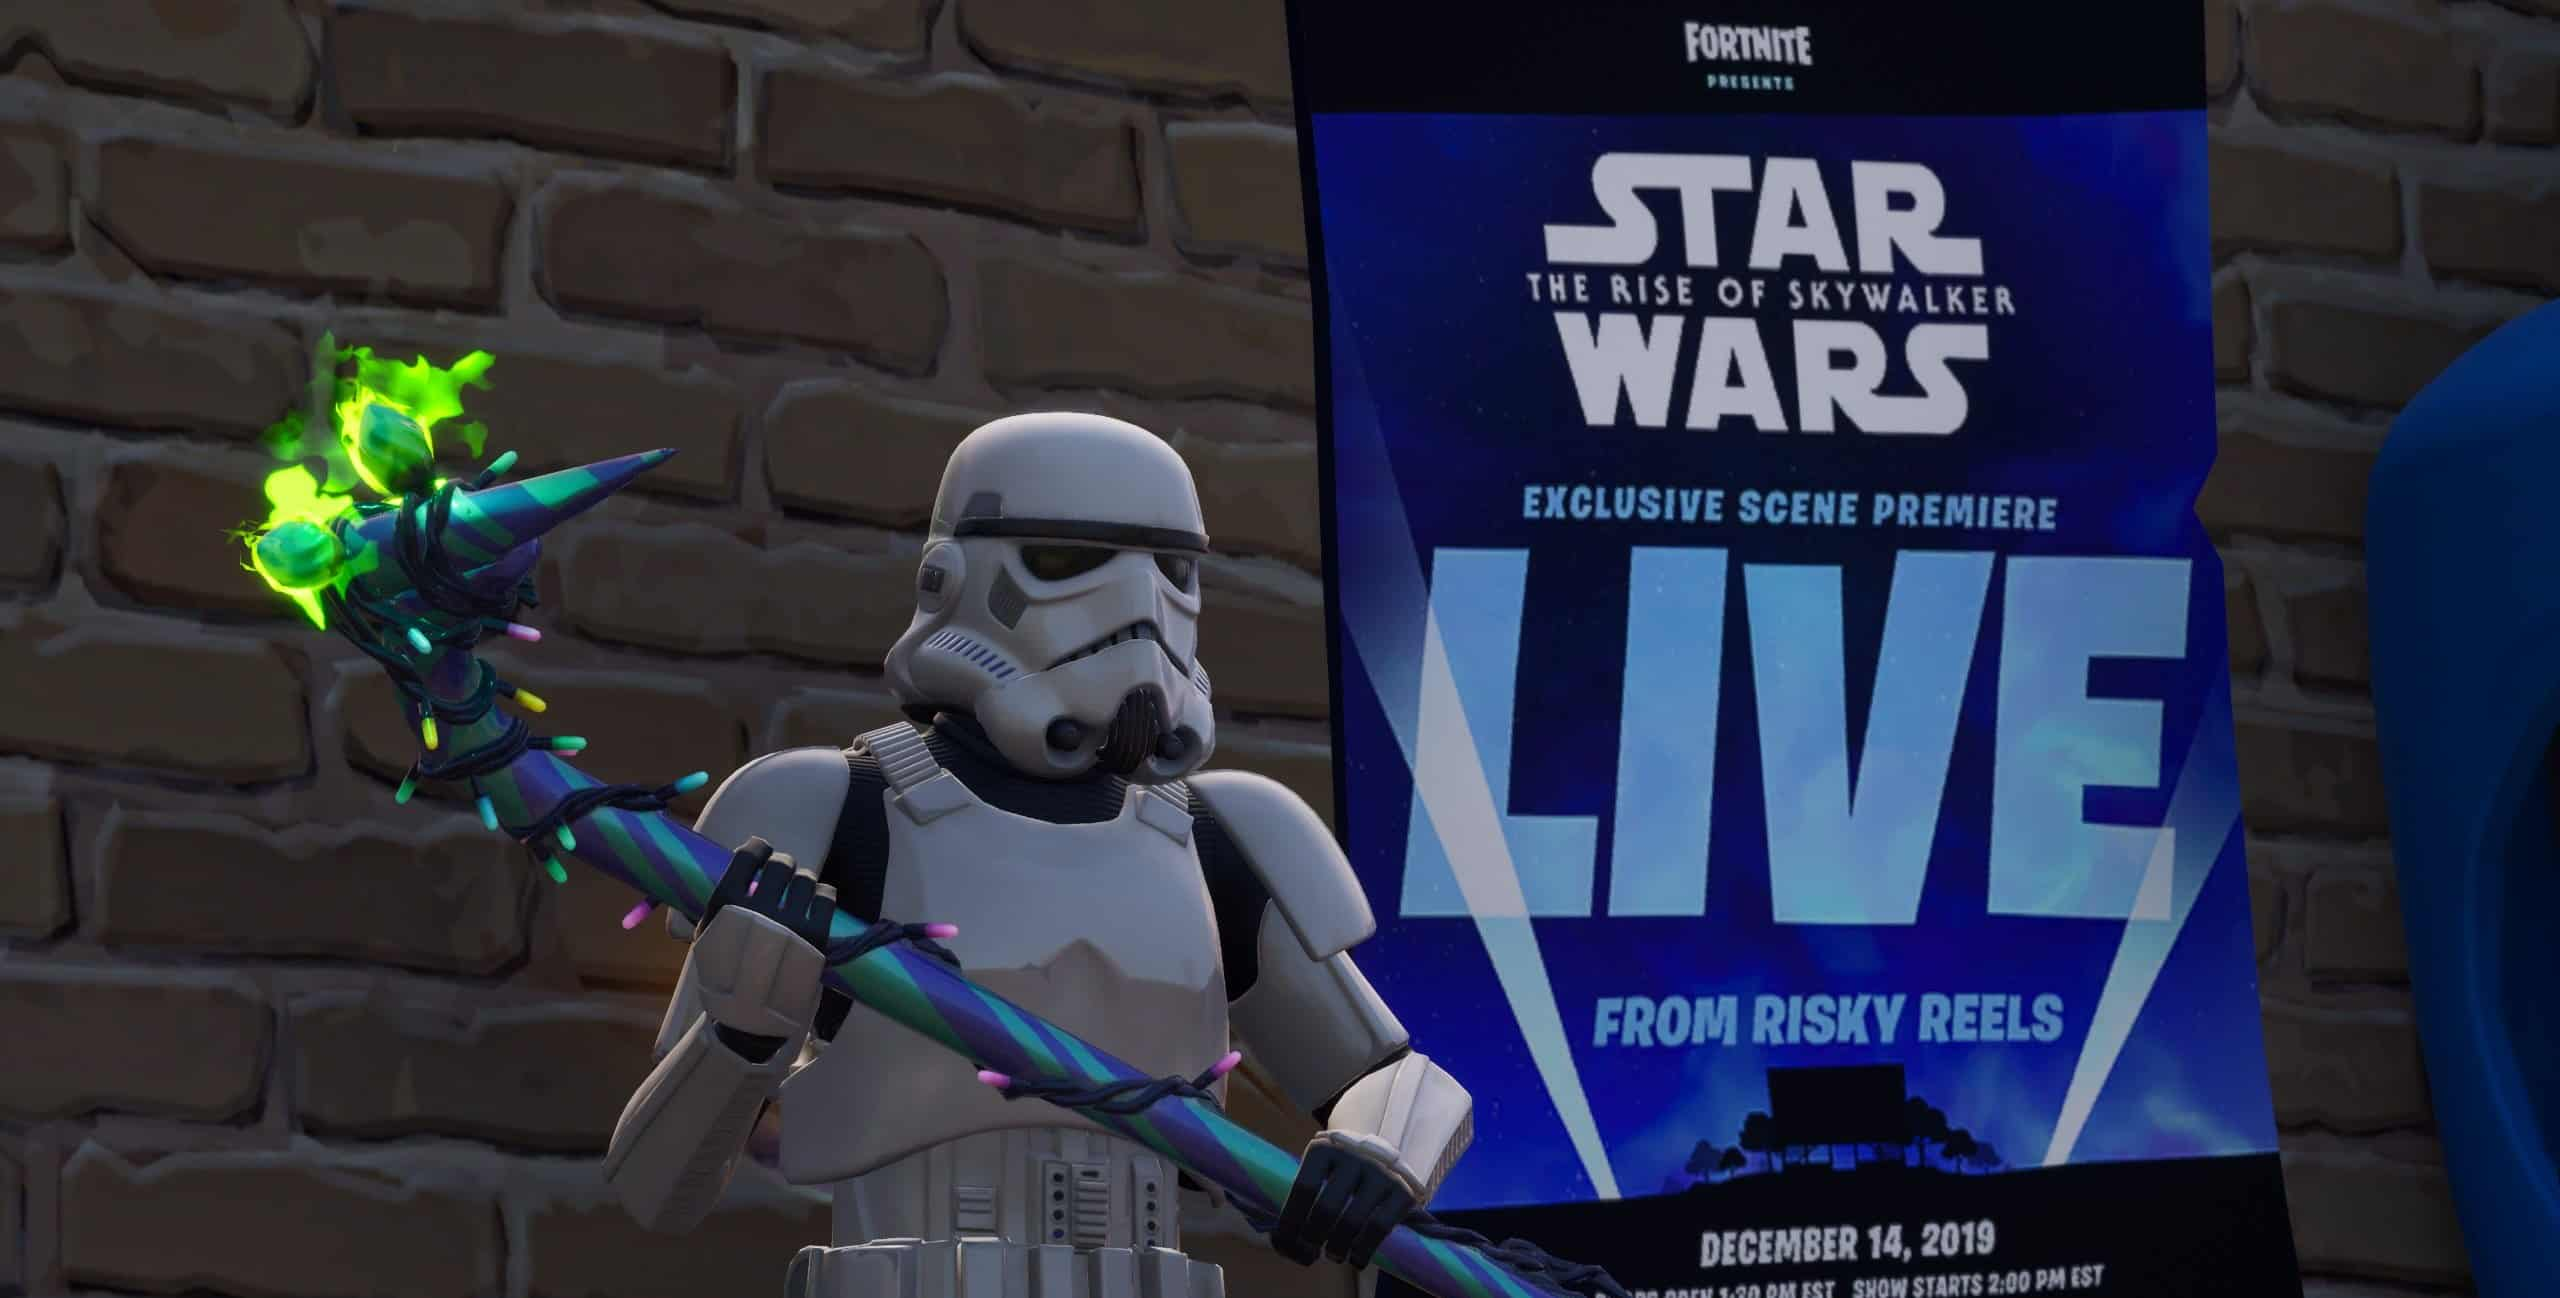 Star Wars Fortnite Event Featured